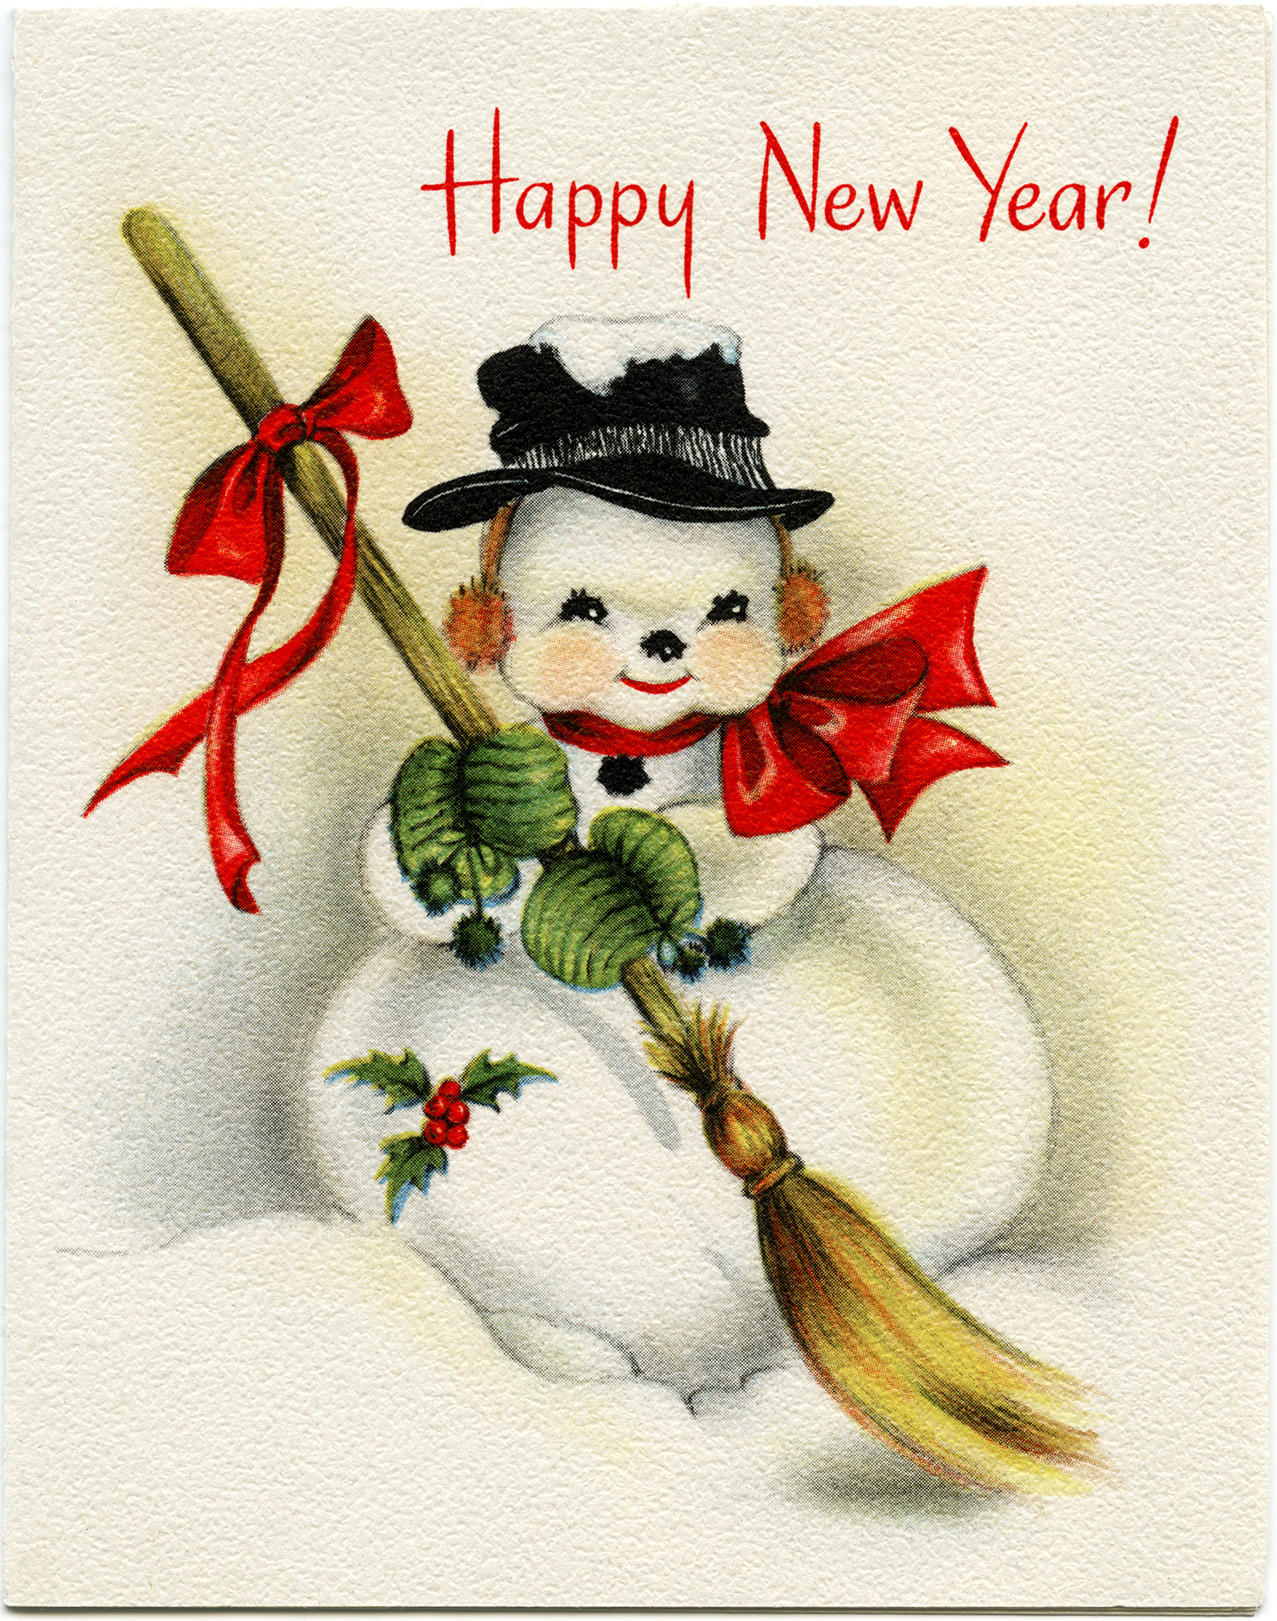 vintage snowman clipart old fashioned new year card vintage winter graphic snowman straw